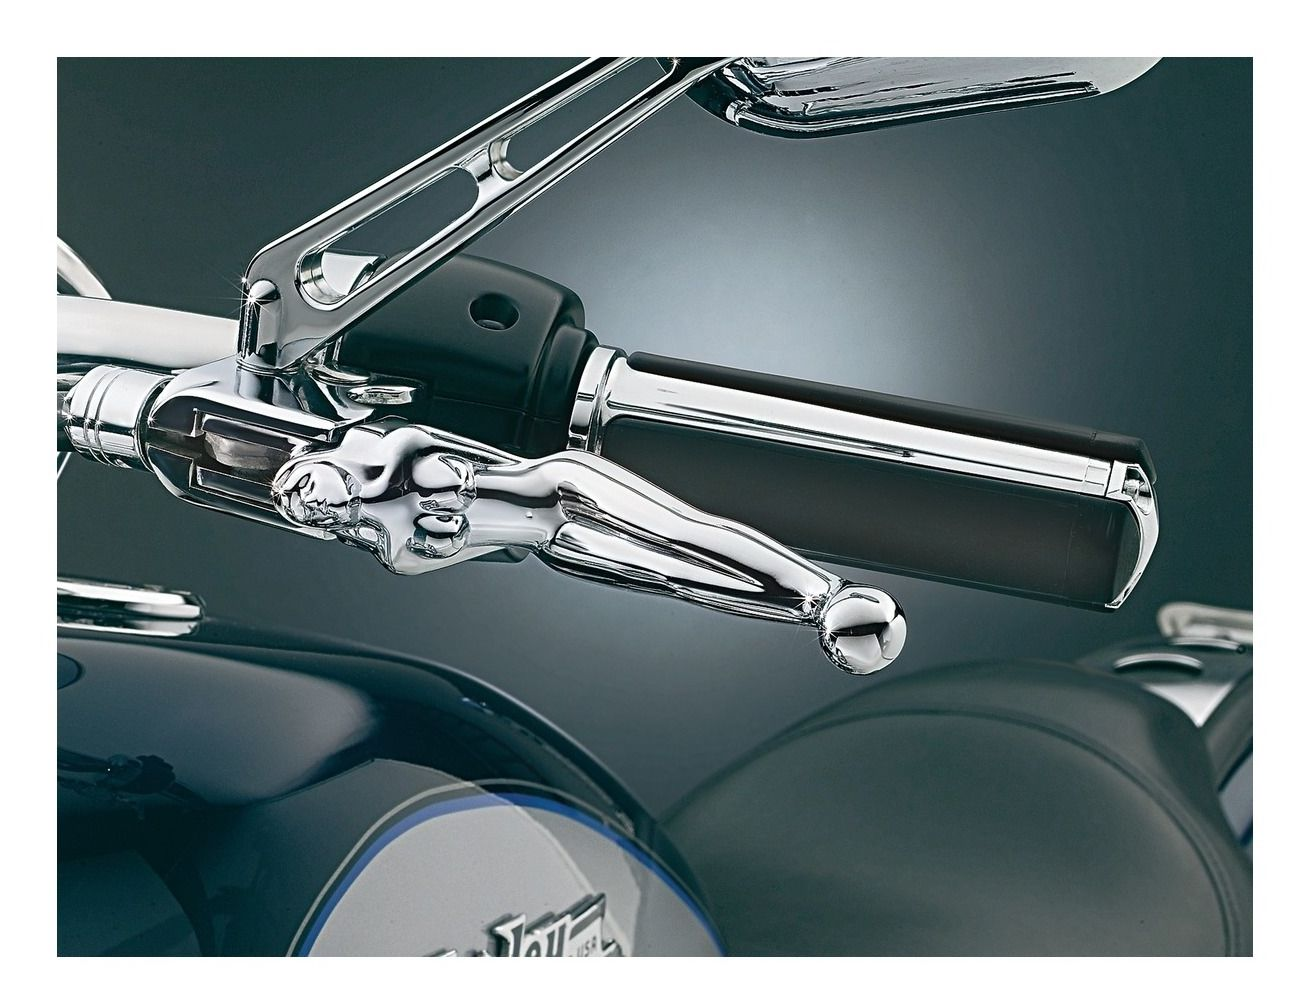 Brake Flame Hand Levers Controls For 1996-2012 Harley Davidson FLSTN Softail DELUXE Chrome Clutch